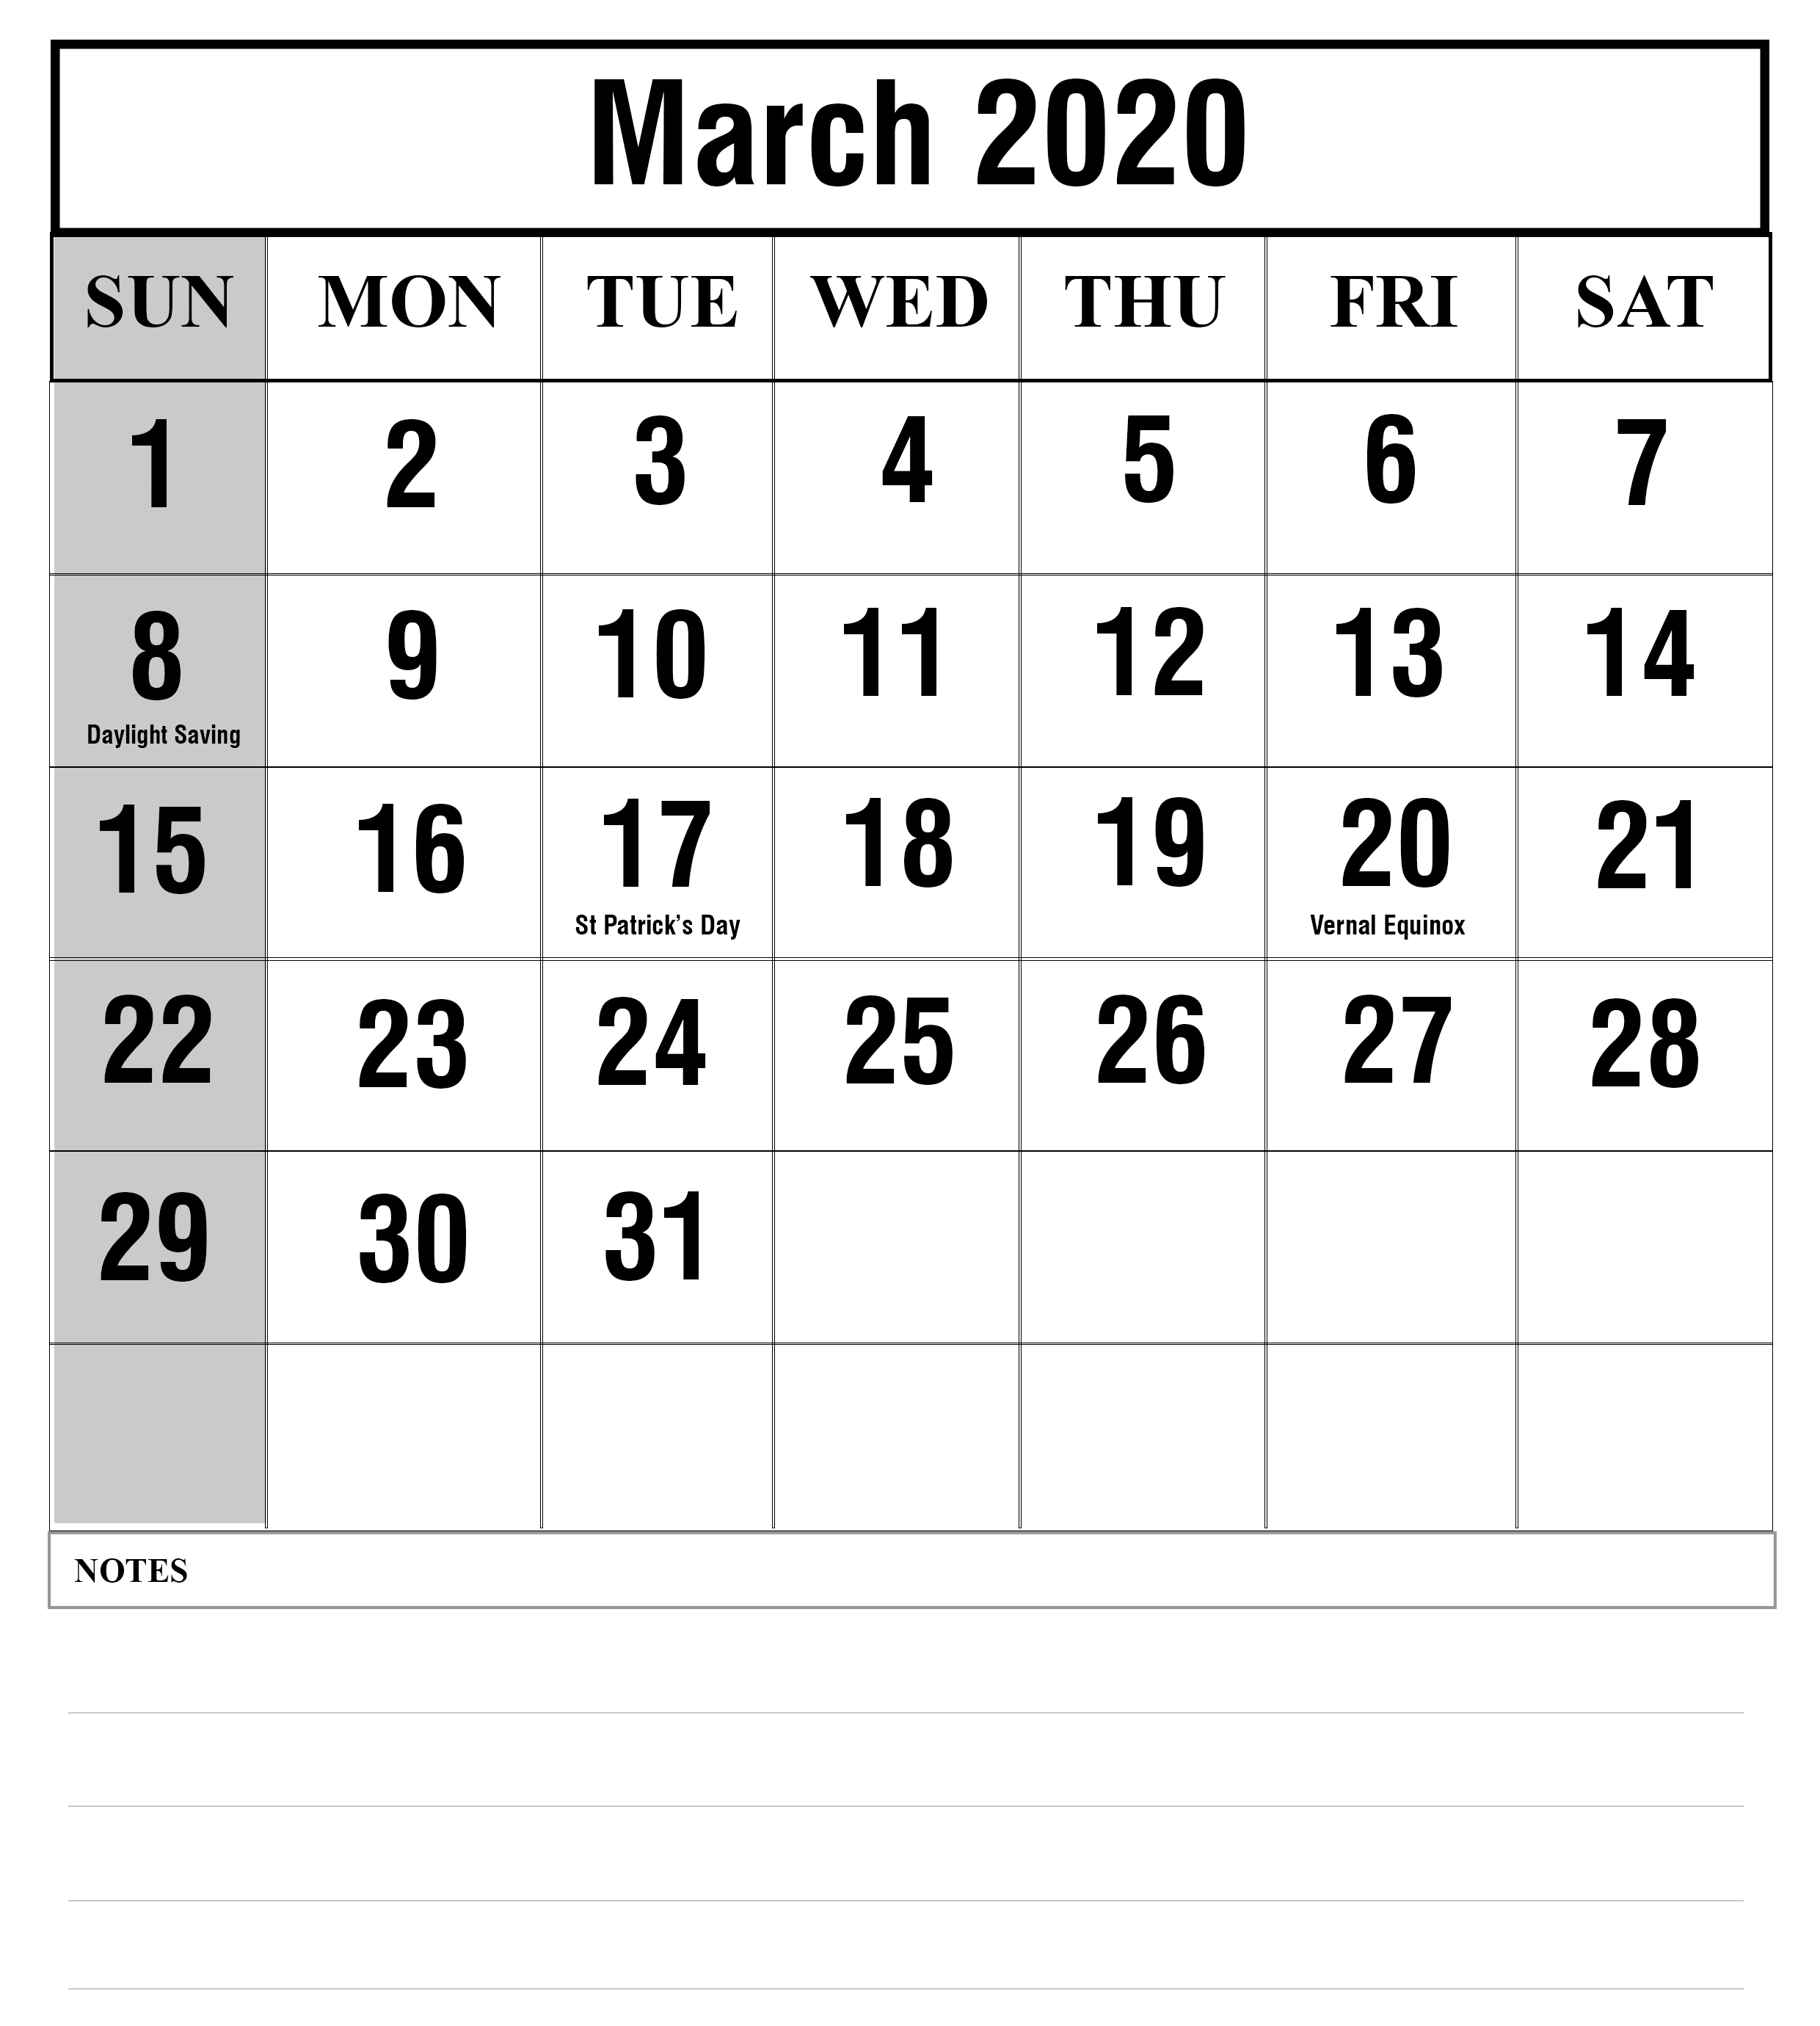 March Calendar 2020 Editable With Notes